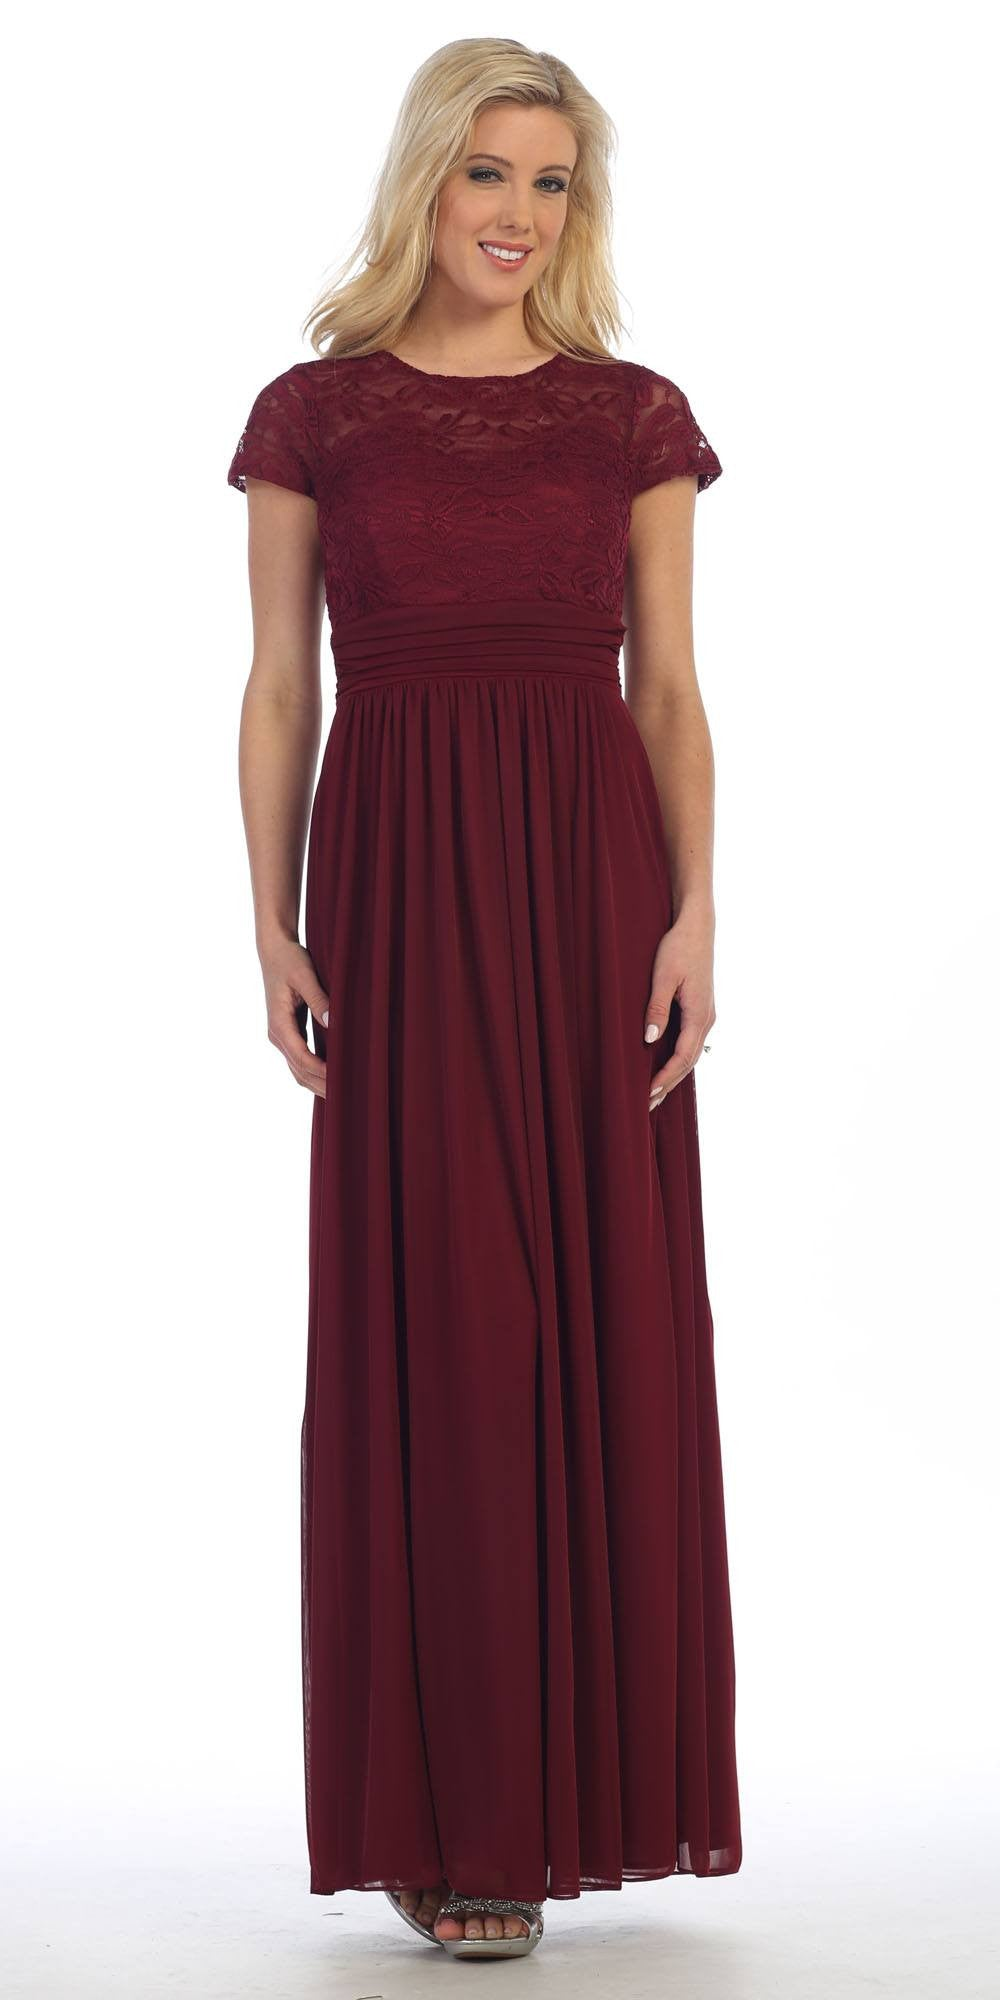 Lace Illusion Bodice Short Sleeves Long Formal Dress Burgundy